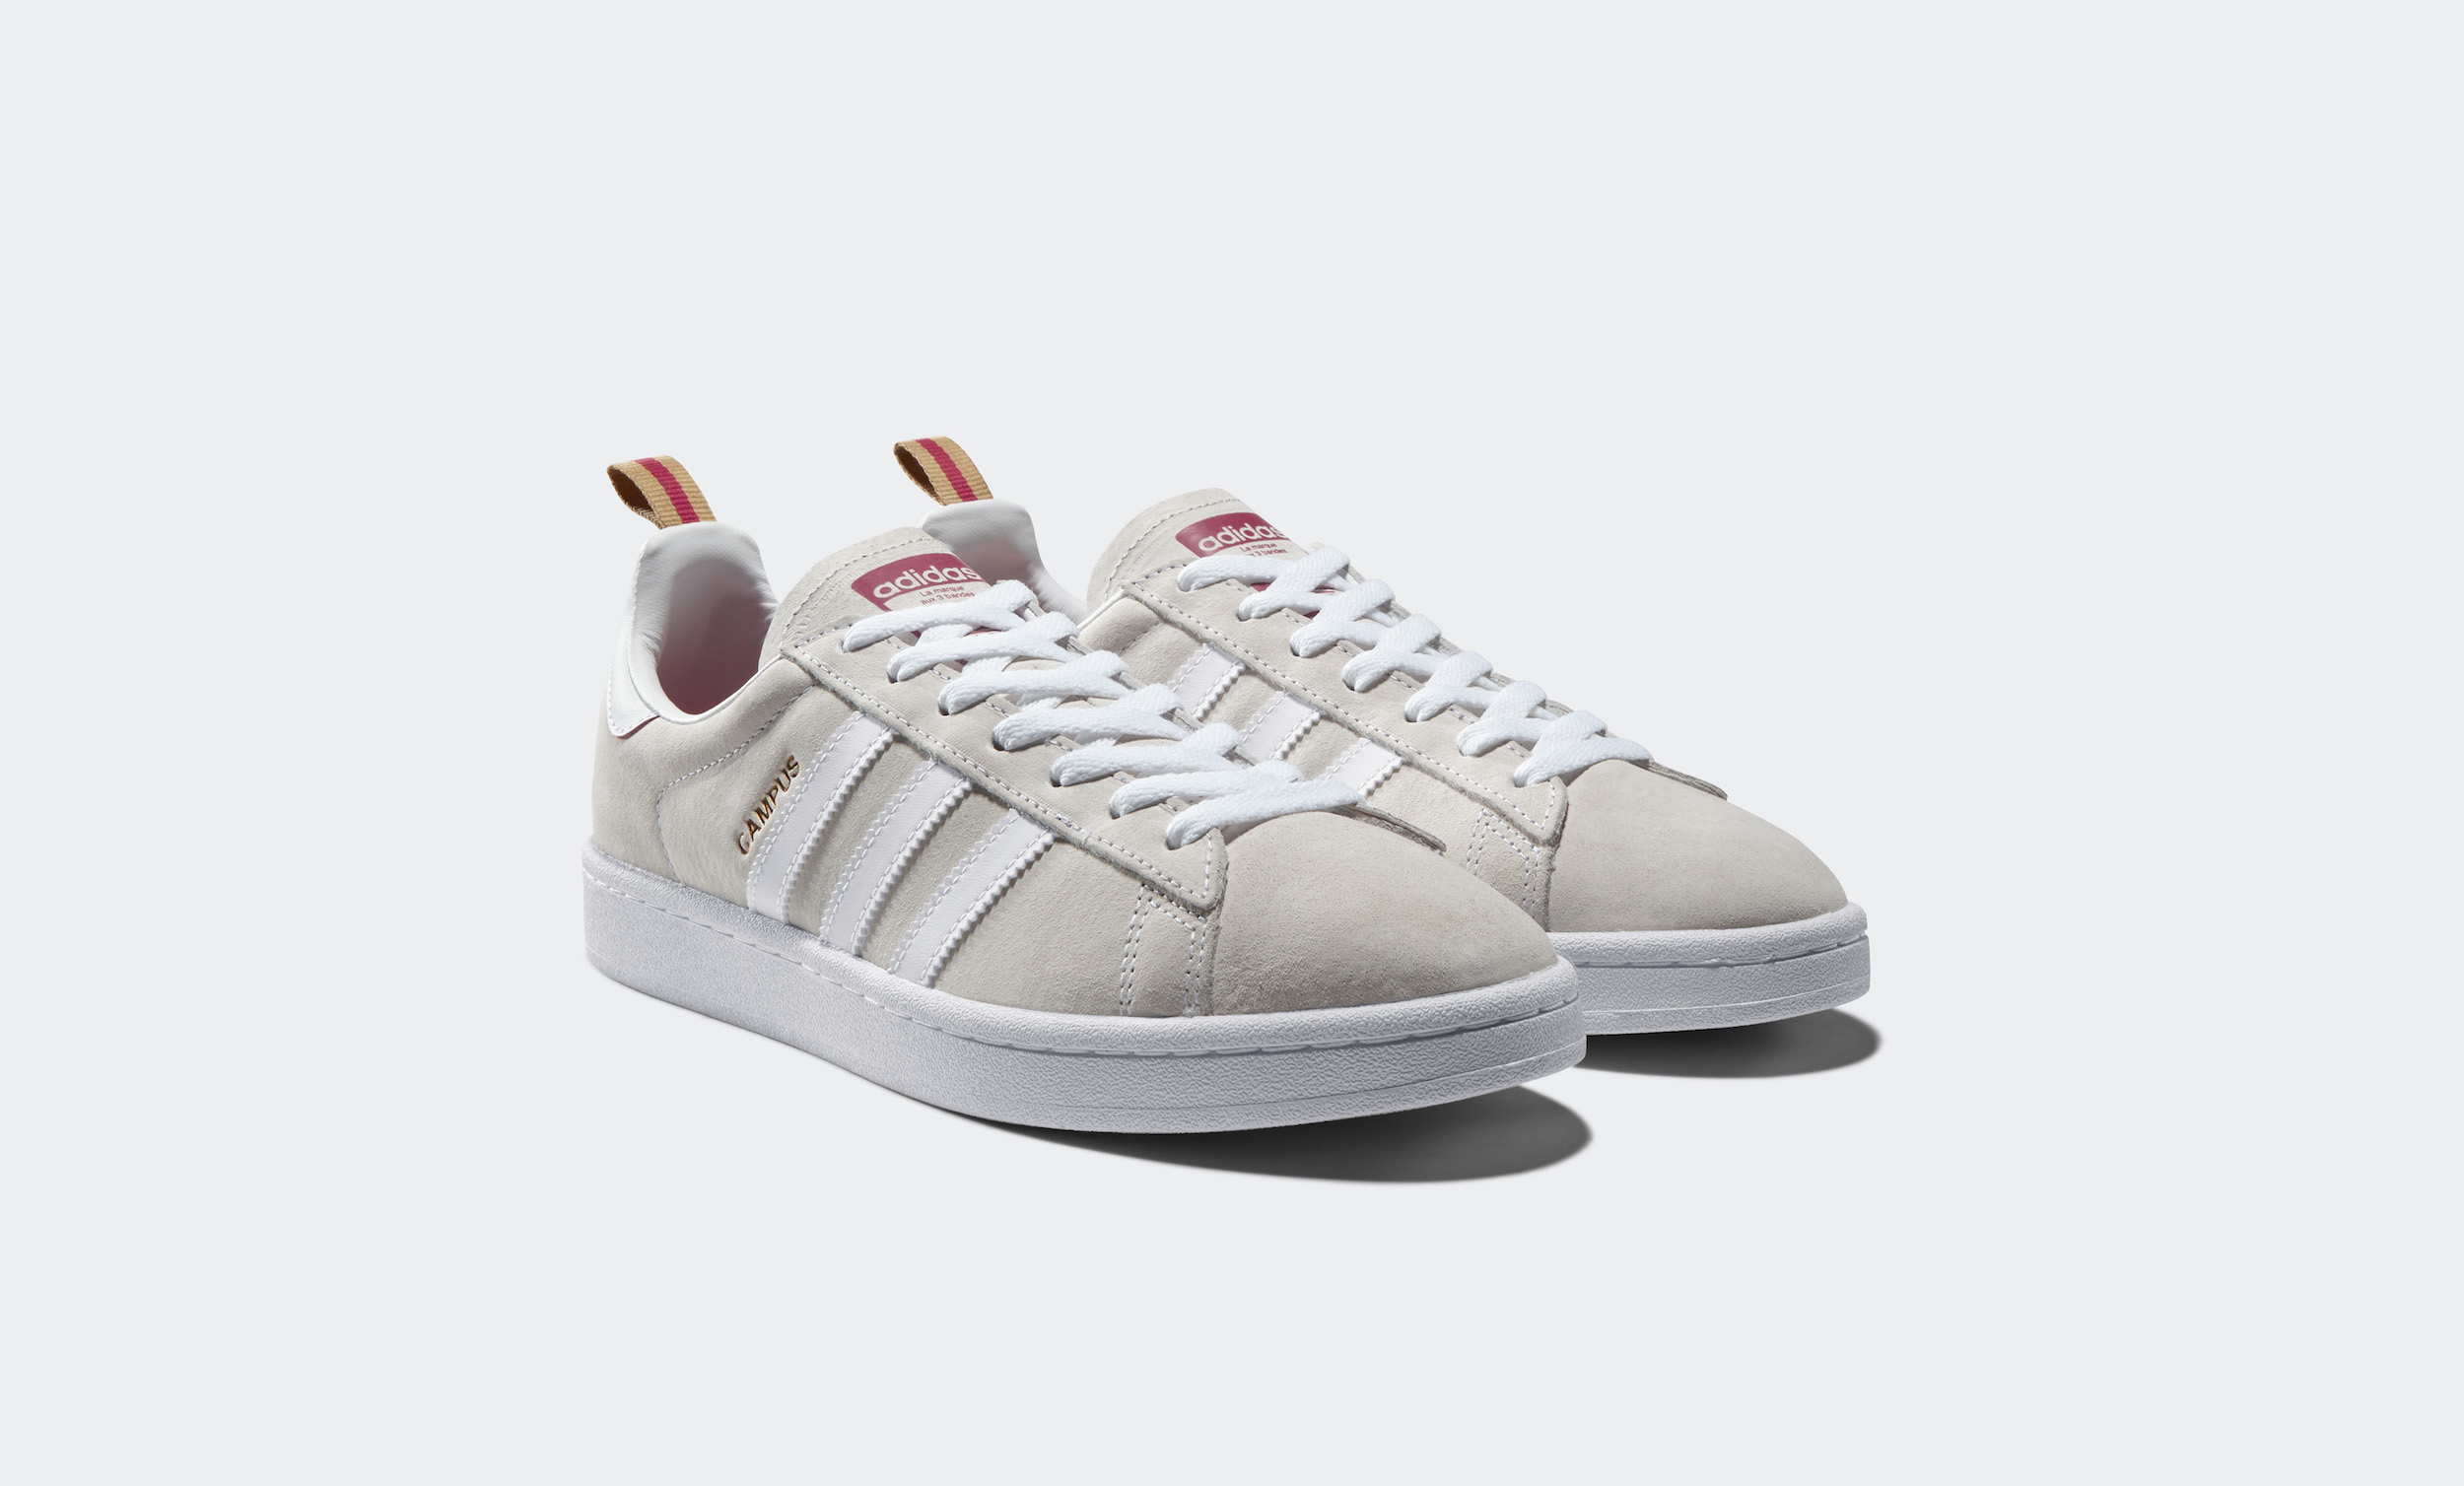 promo code 5c7c5 cd9a0 adidas Originals Unveils its Chinese New Year Four-Part Pack ...